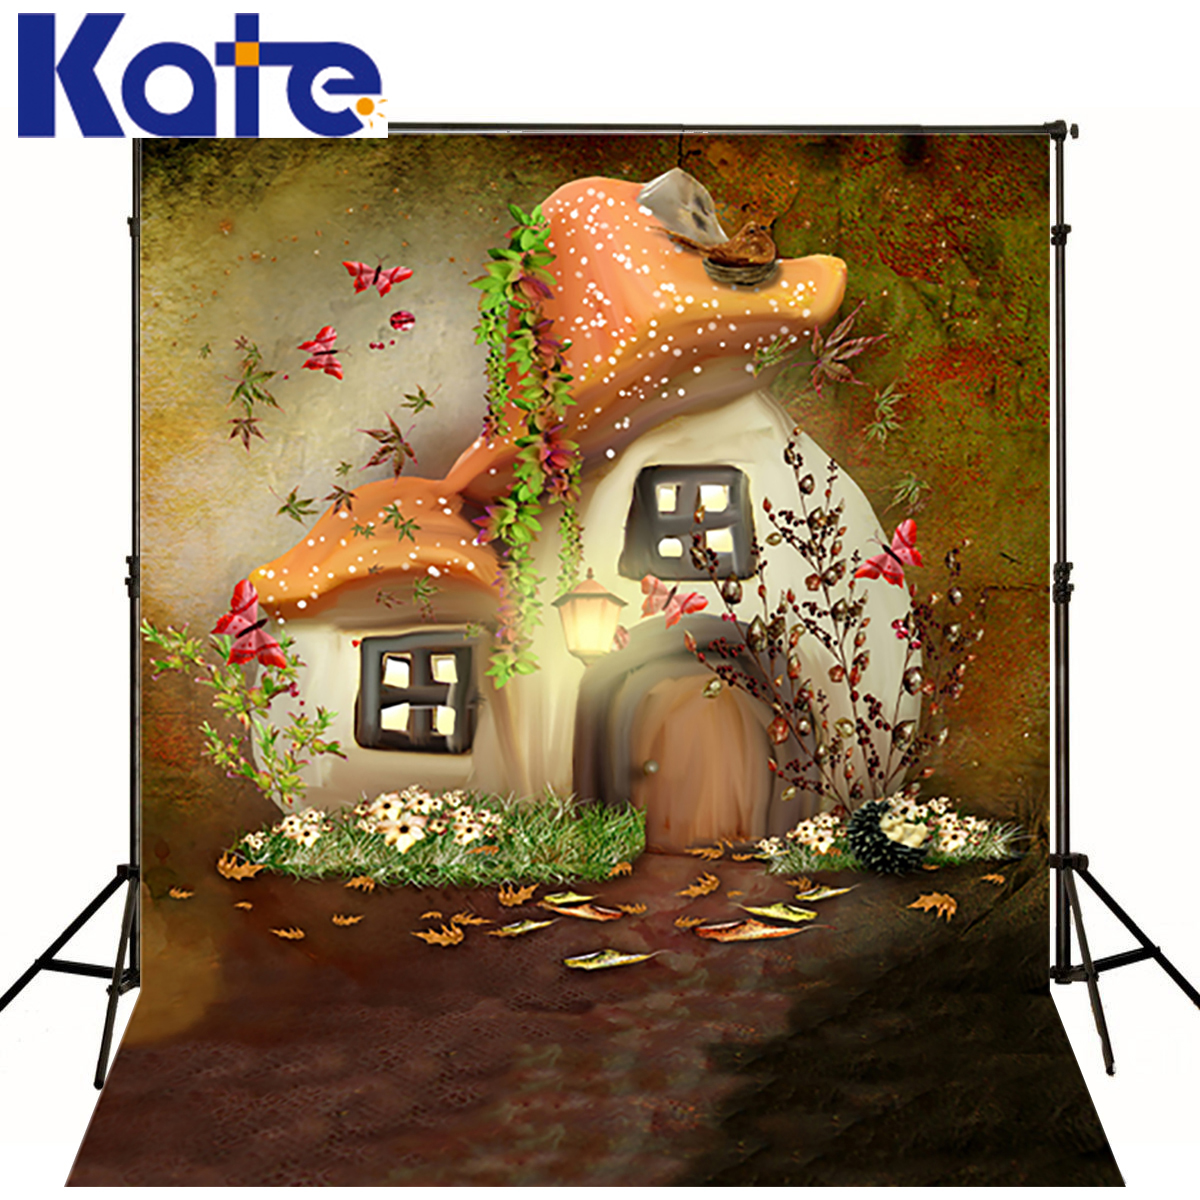 Kate Newborn Fairy Tale World Photography Backdrop Mushroom Forest Natural Scenery Wedding Backdrops for Photography Studio